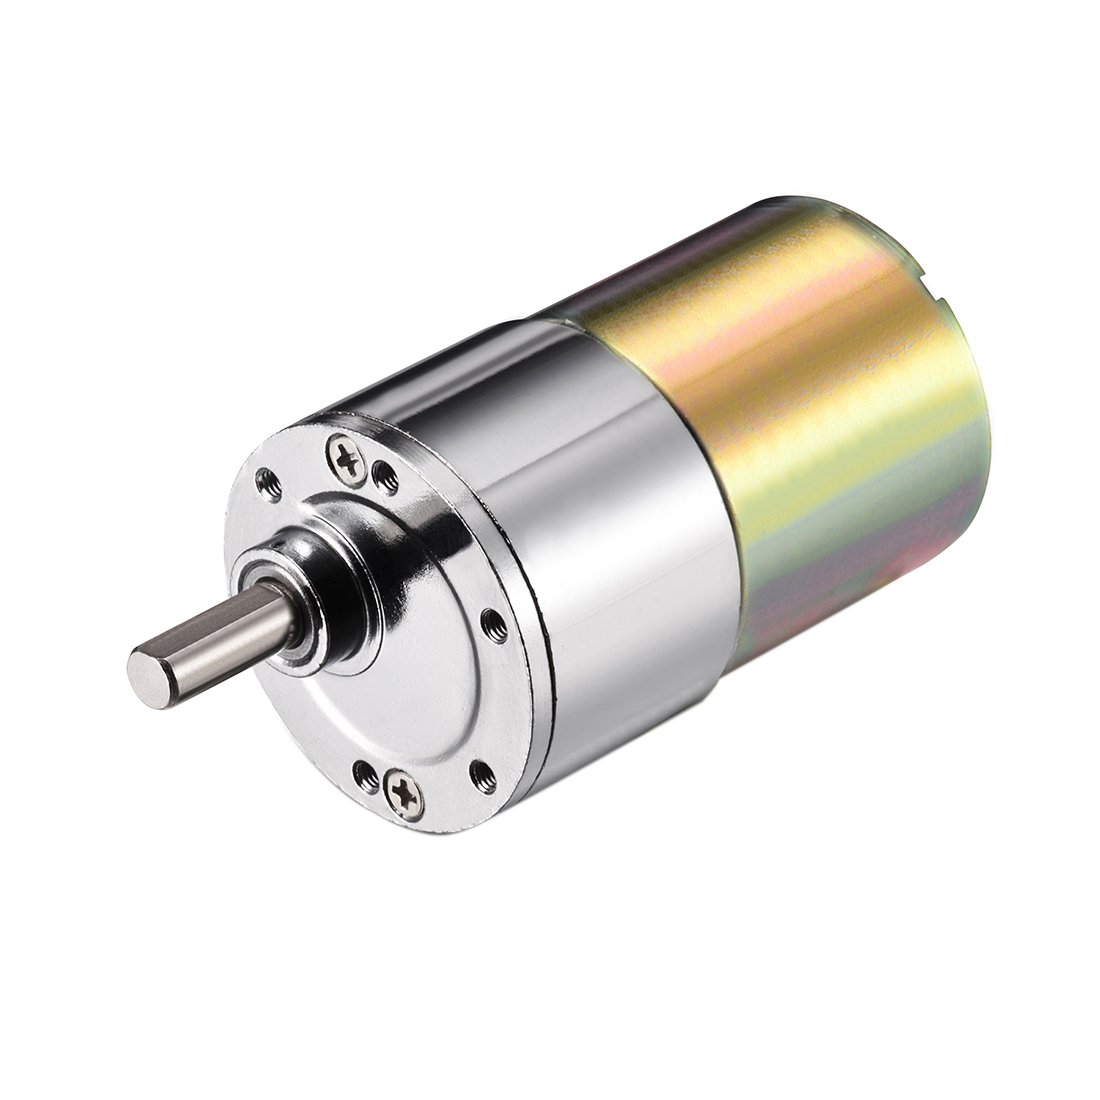 DC 24V 87RPM Micro Gear Box Motor Speed Reduction Electric Gearbox Eccentric Output Shaft